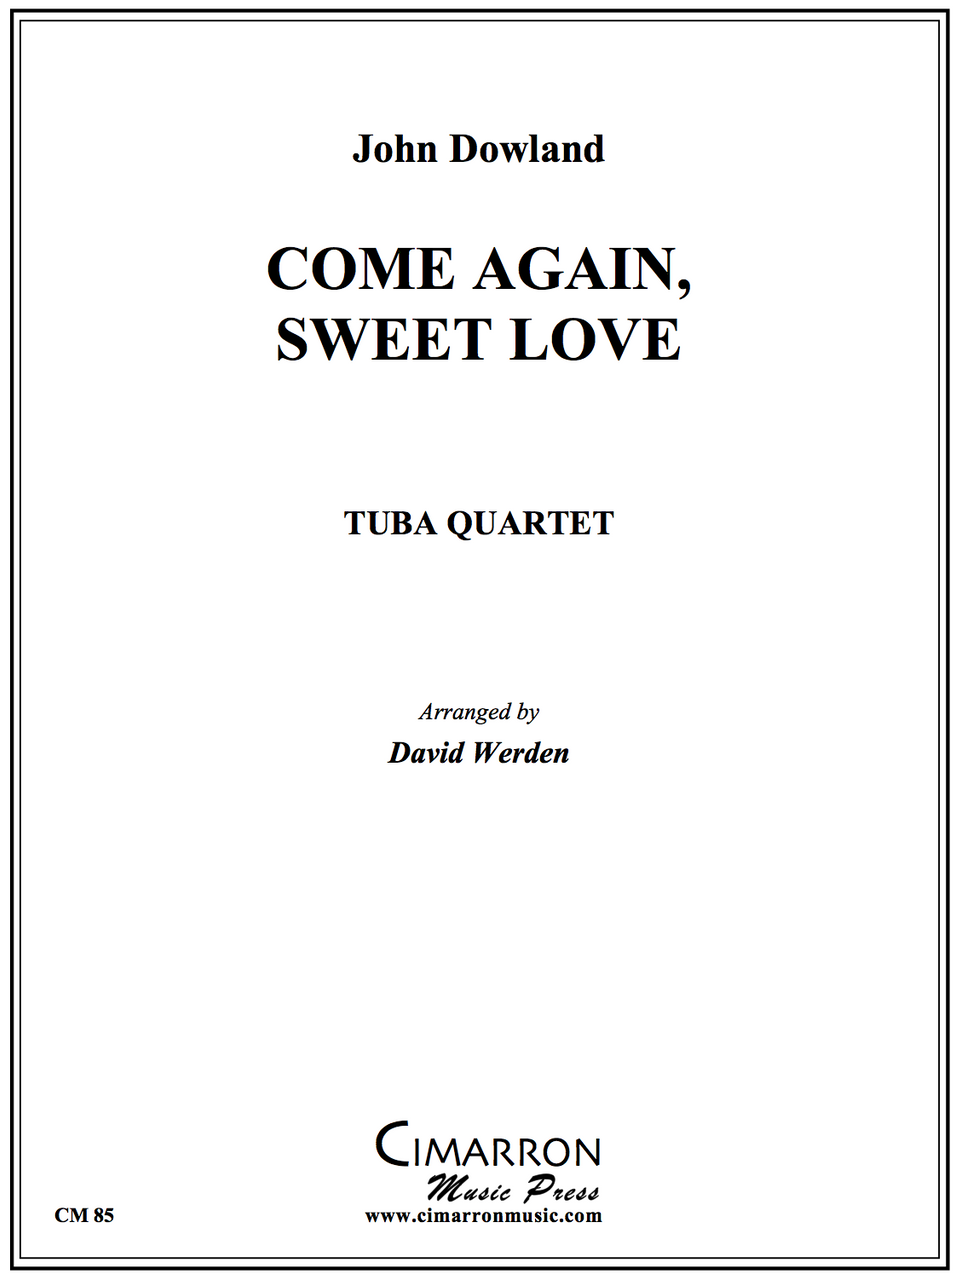 Dowland - Come again, Sweet Love - Tuba Quartet